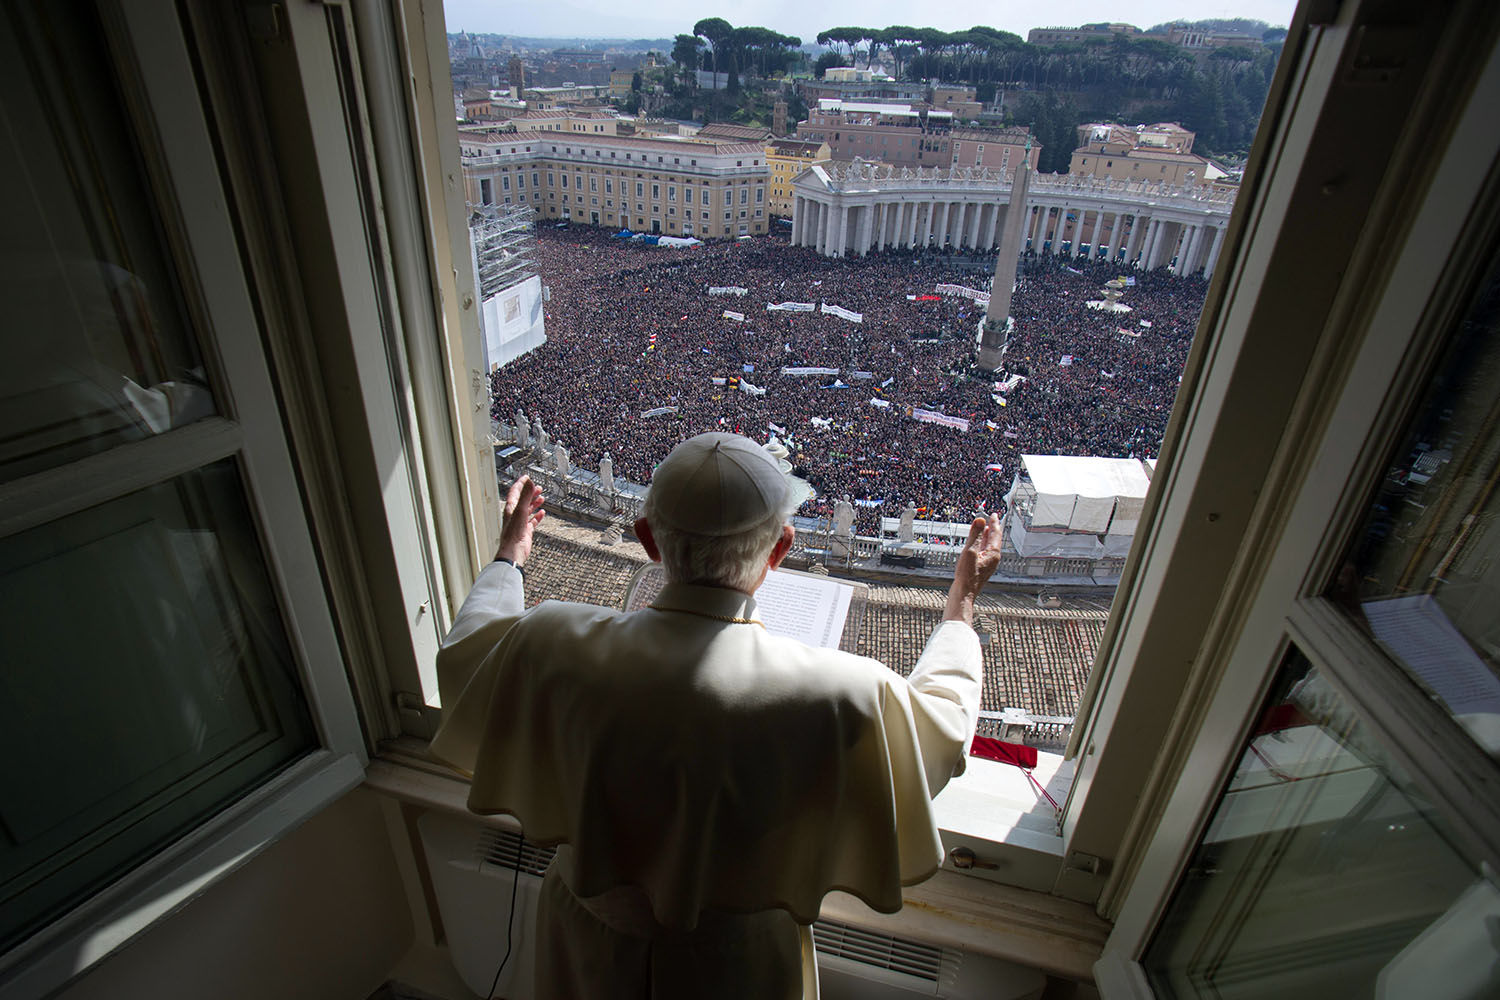 Feb. 24, 2013. In this photo provided by the Vatican newspaper L'Osservatore Romano, Pope Benedict XVI delivers his blessing during his last Angelus noon prayer from the window of his studio overlooking St. Peter's Square.